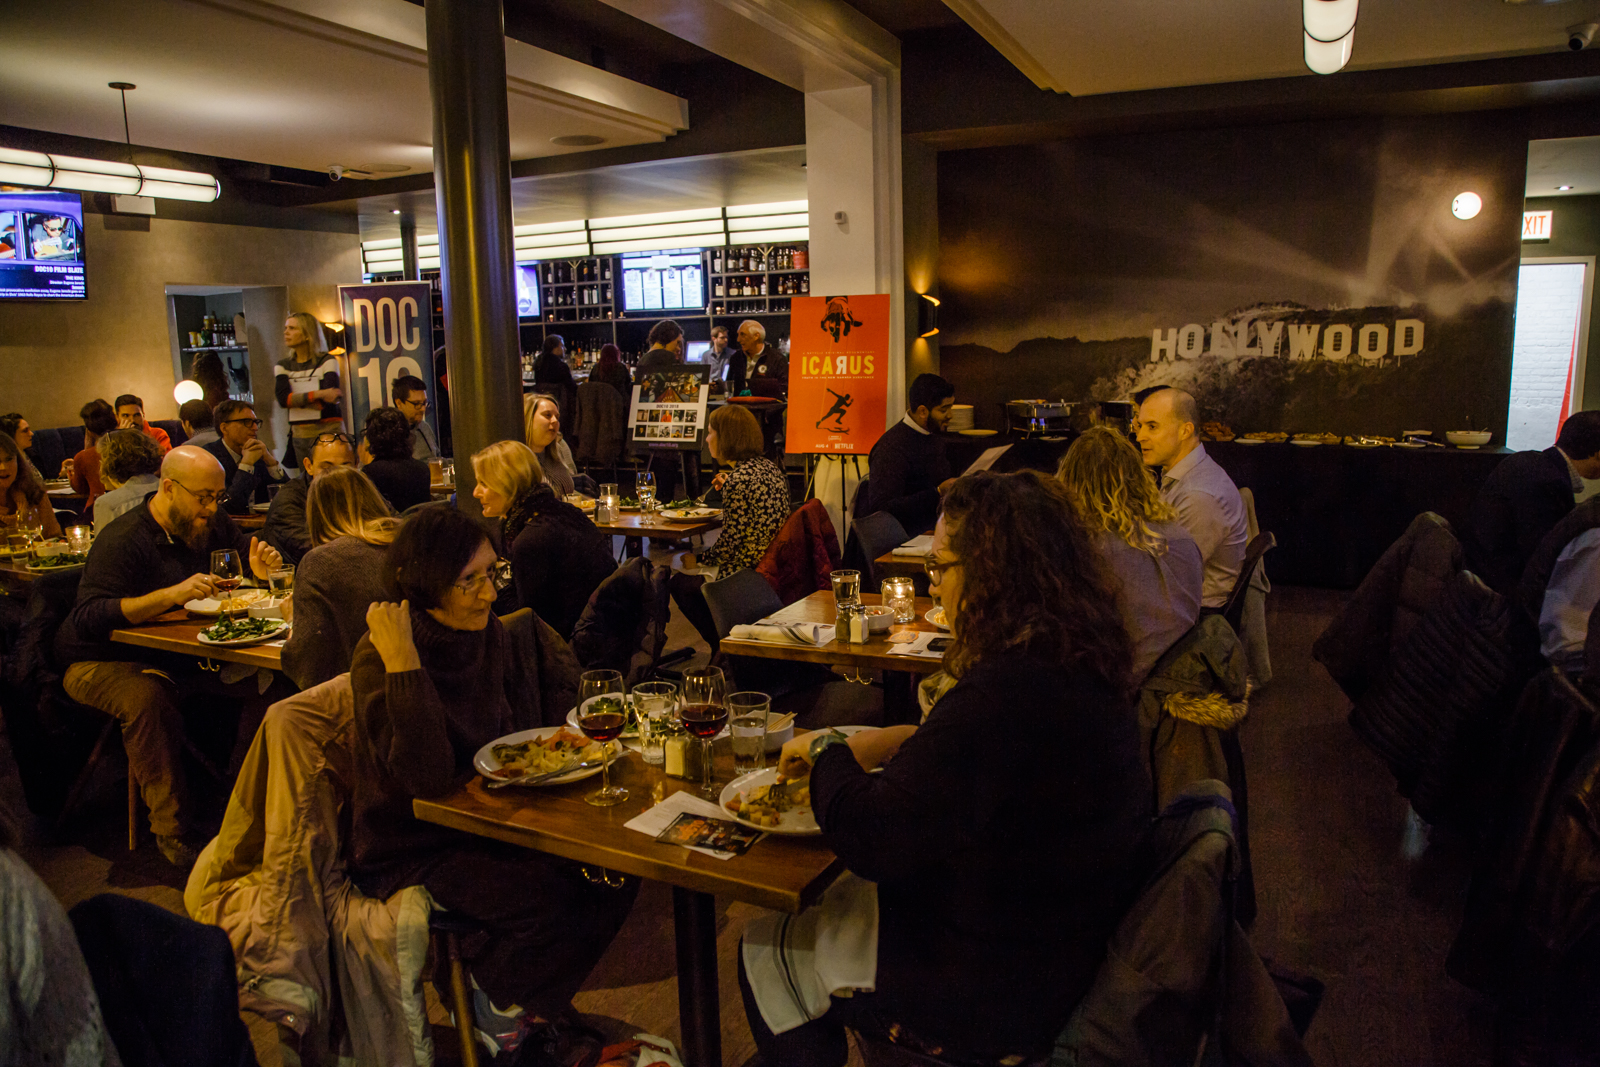 180222-dinner-and-docs-icarus-024.jpg